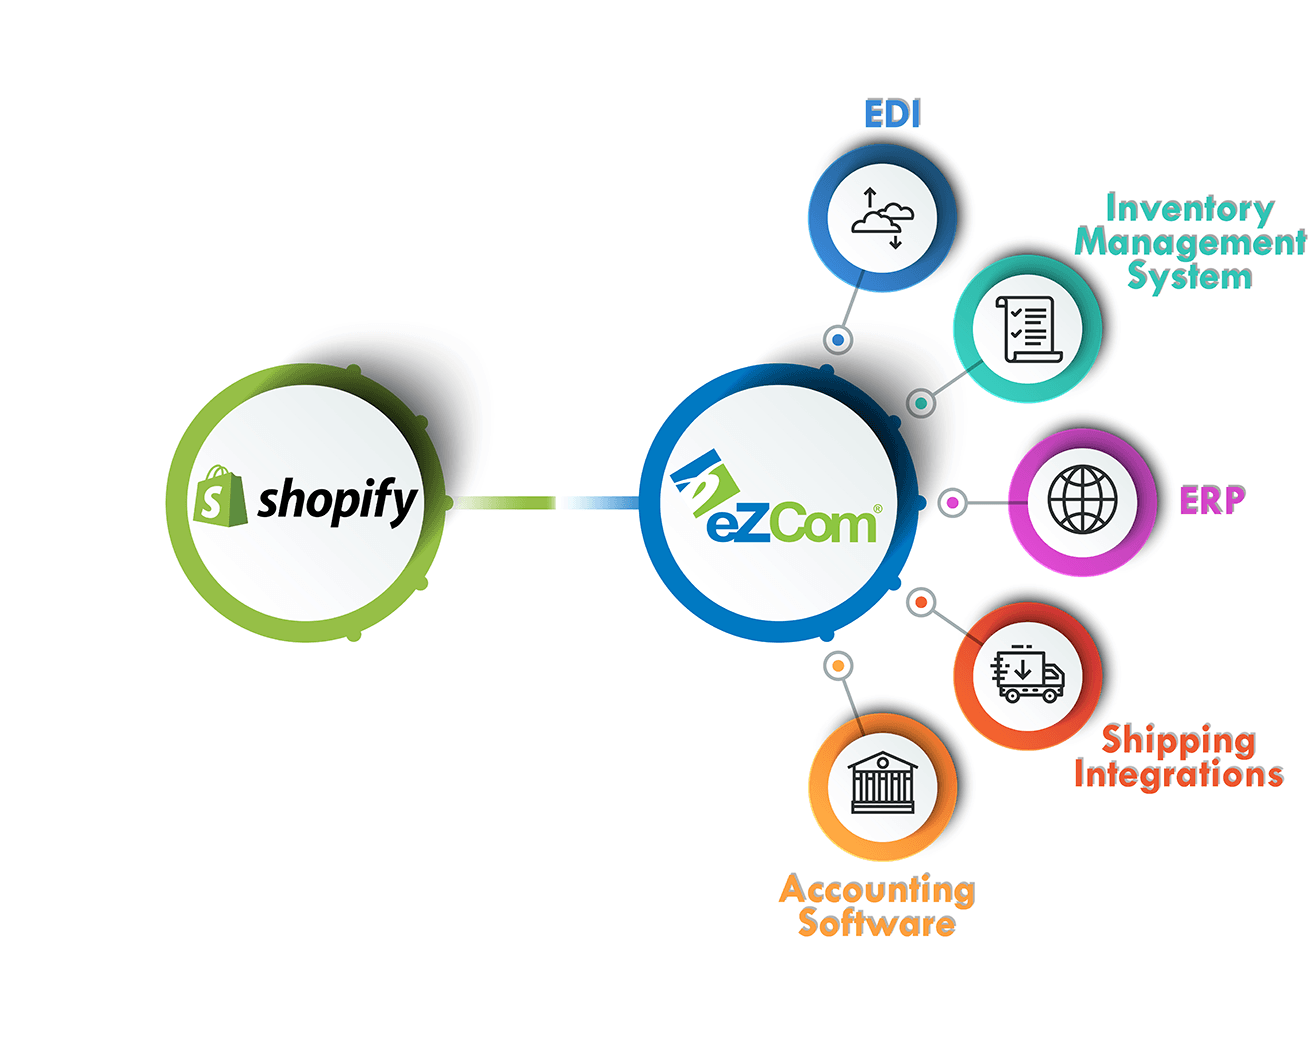 Shopify eZCom connector